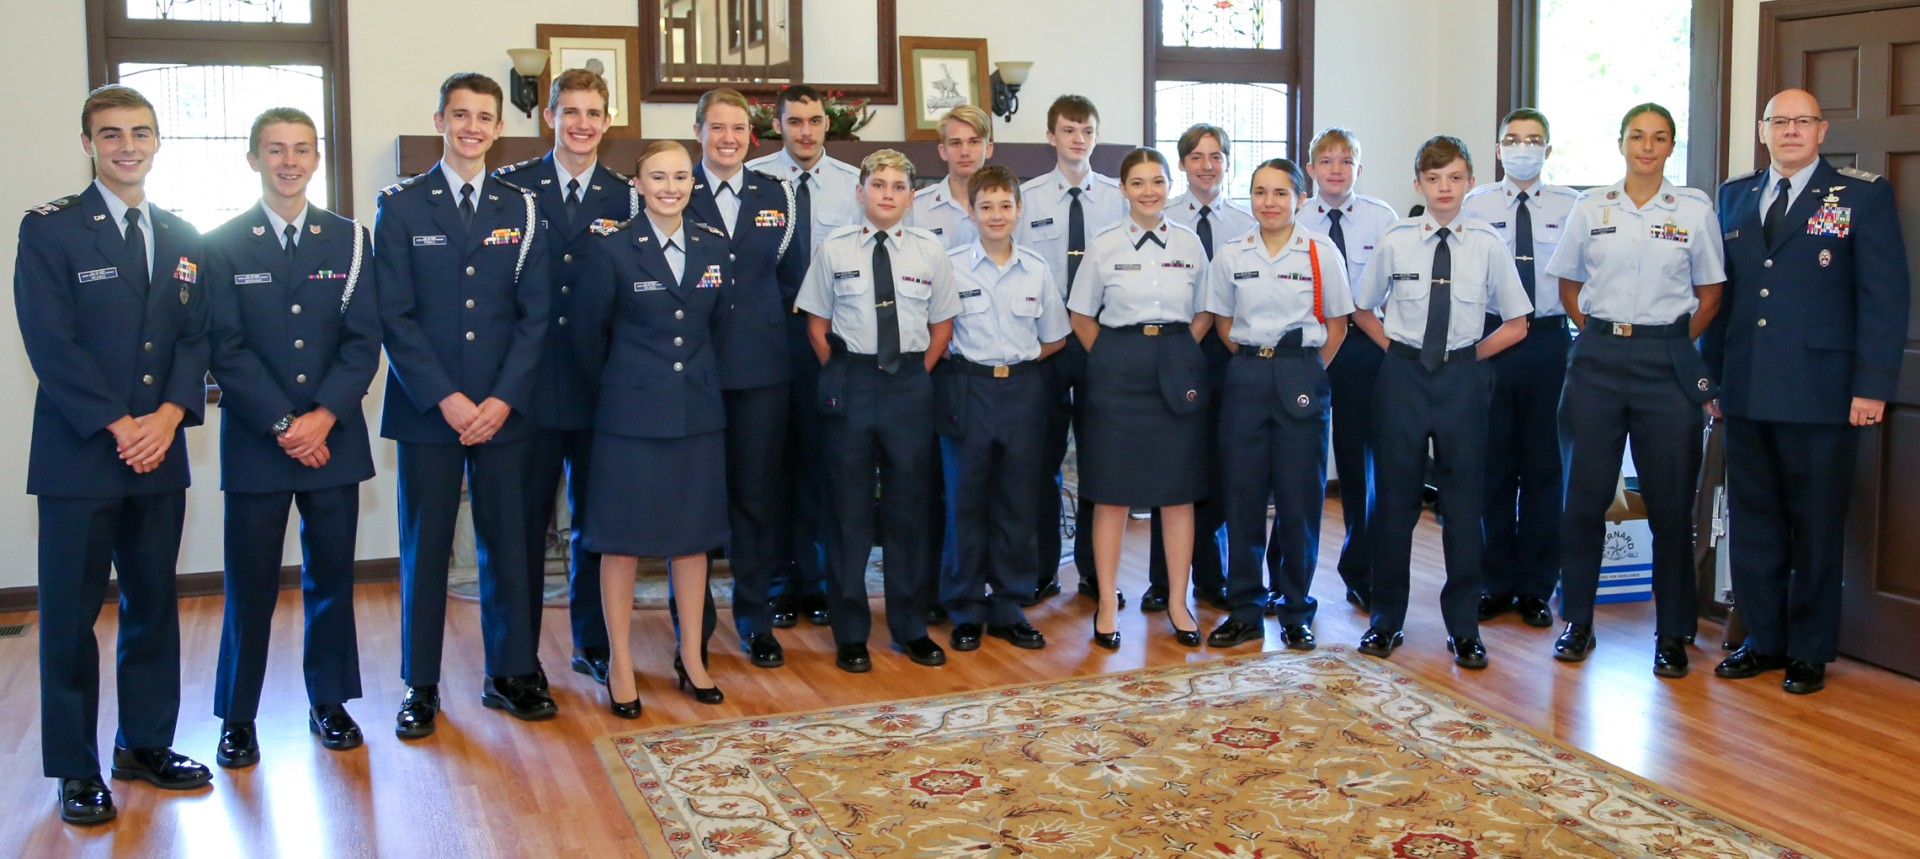 Cadets stand for a photo together after the Spaatz presentation ceremony